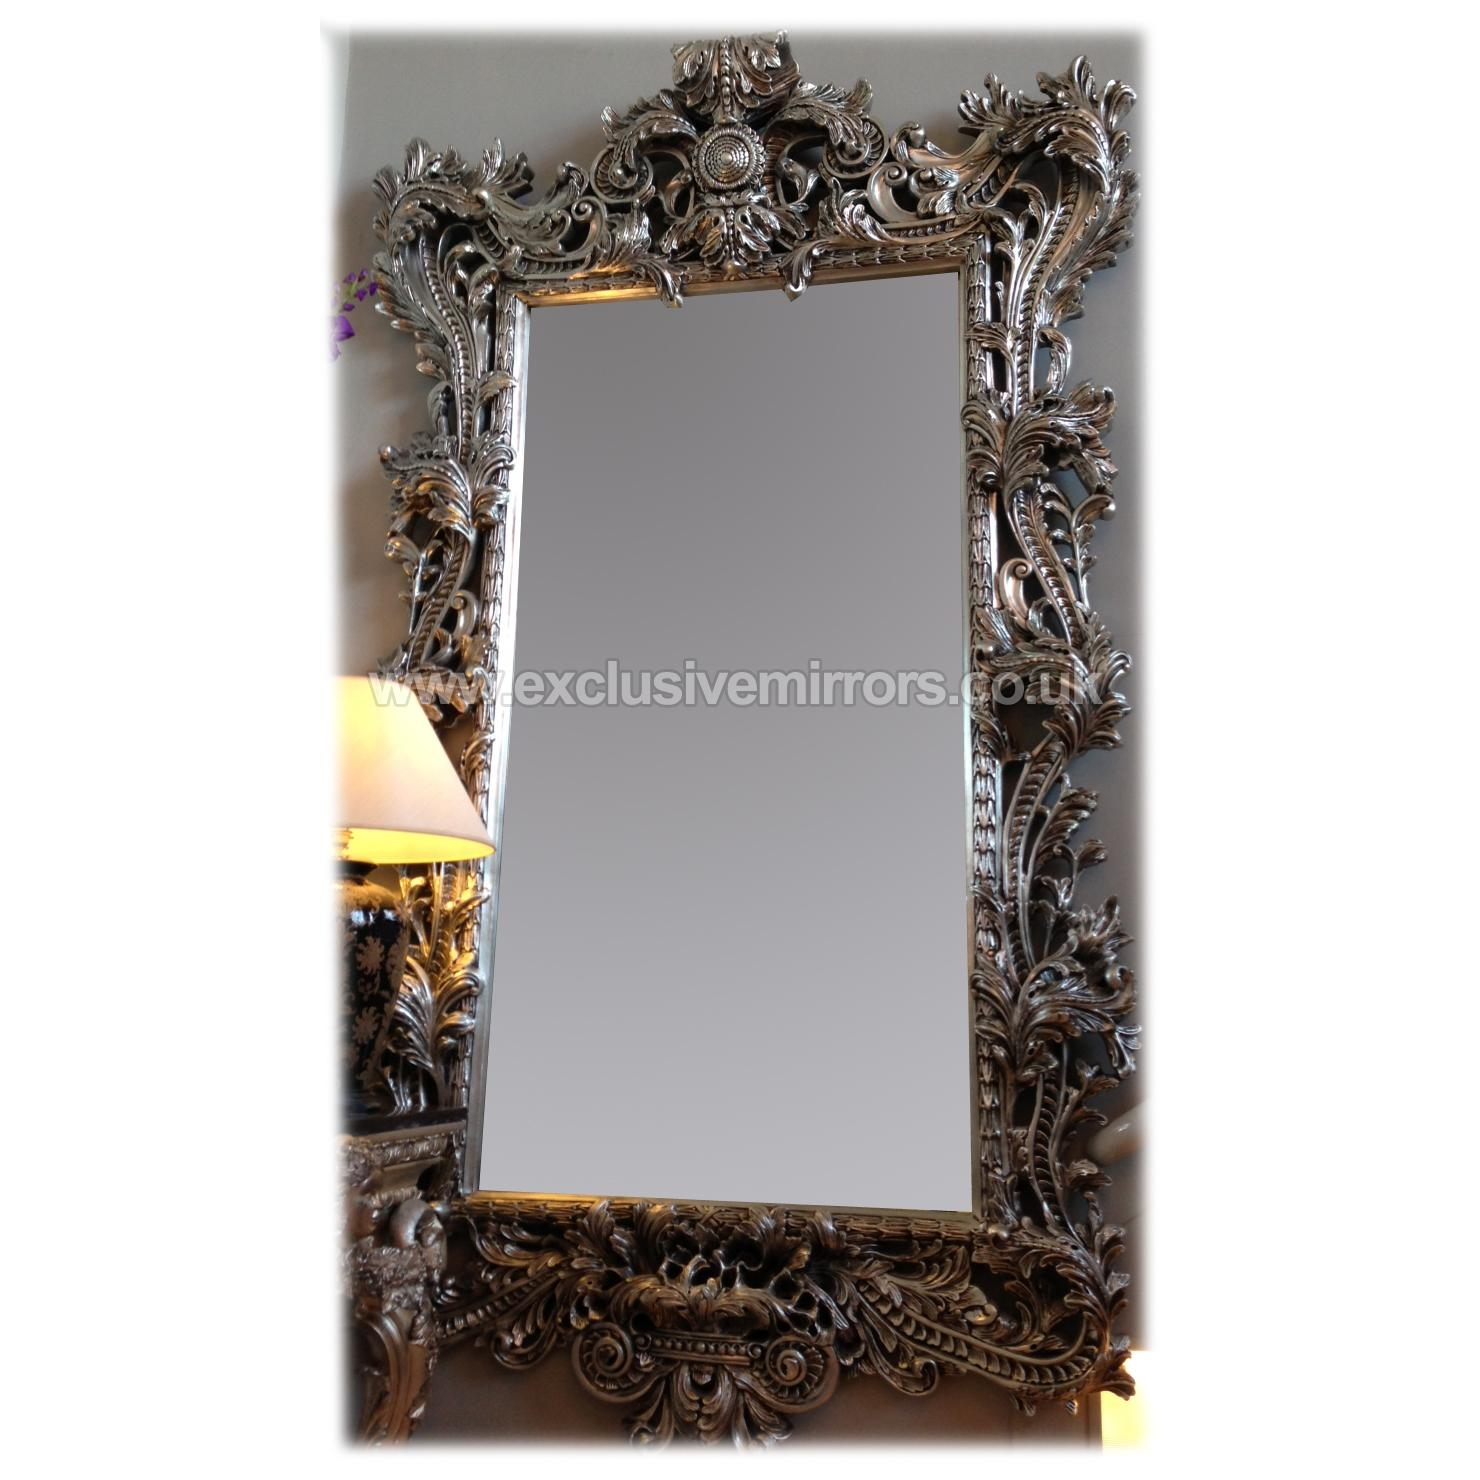 Extra Large Wall Mirrors 109 Cute Interior And Large Gold Very Pertaining To Ornate Mirrors For Sale (Image 7 of 20)